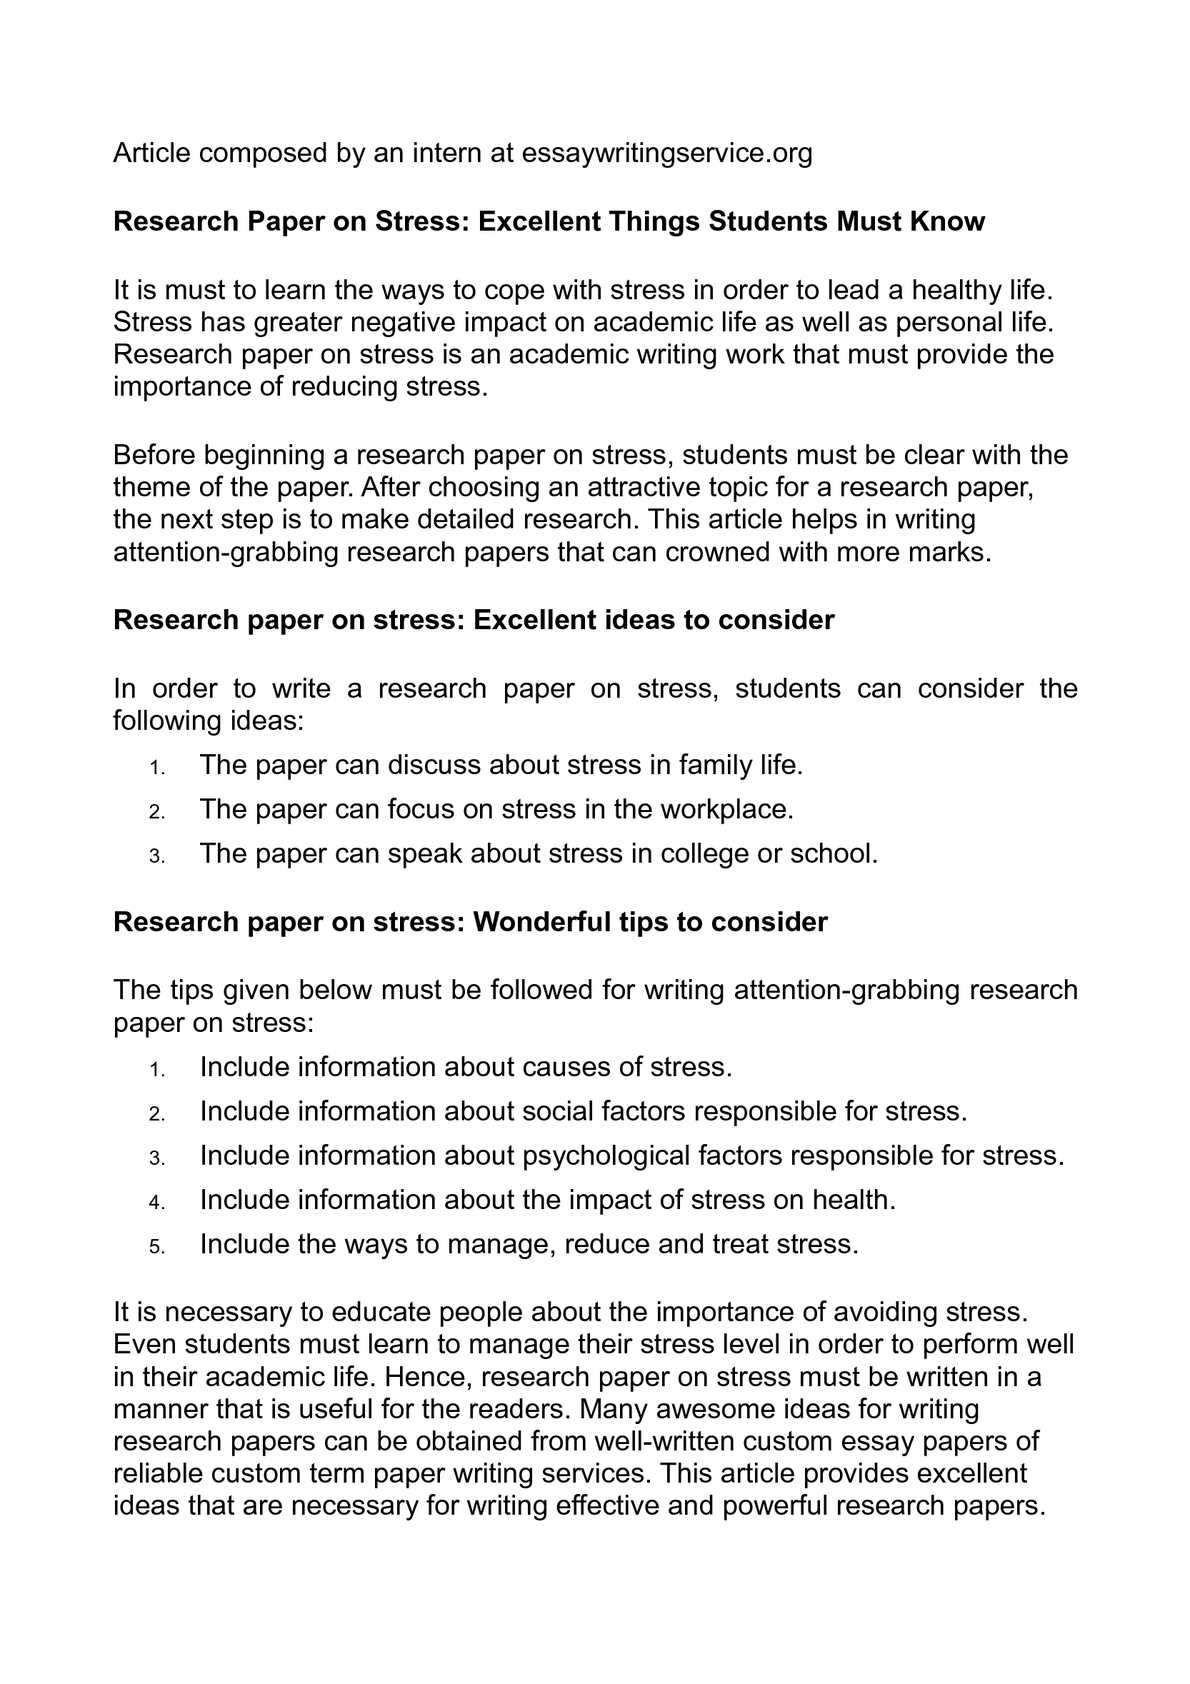 001 Research Paper Psychology Topics Stress Beautiful